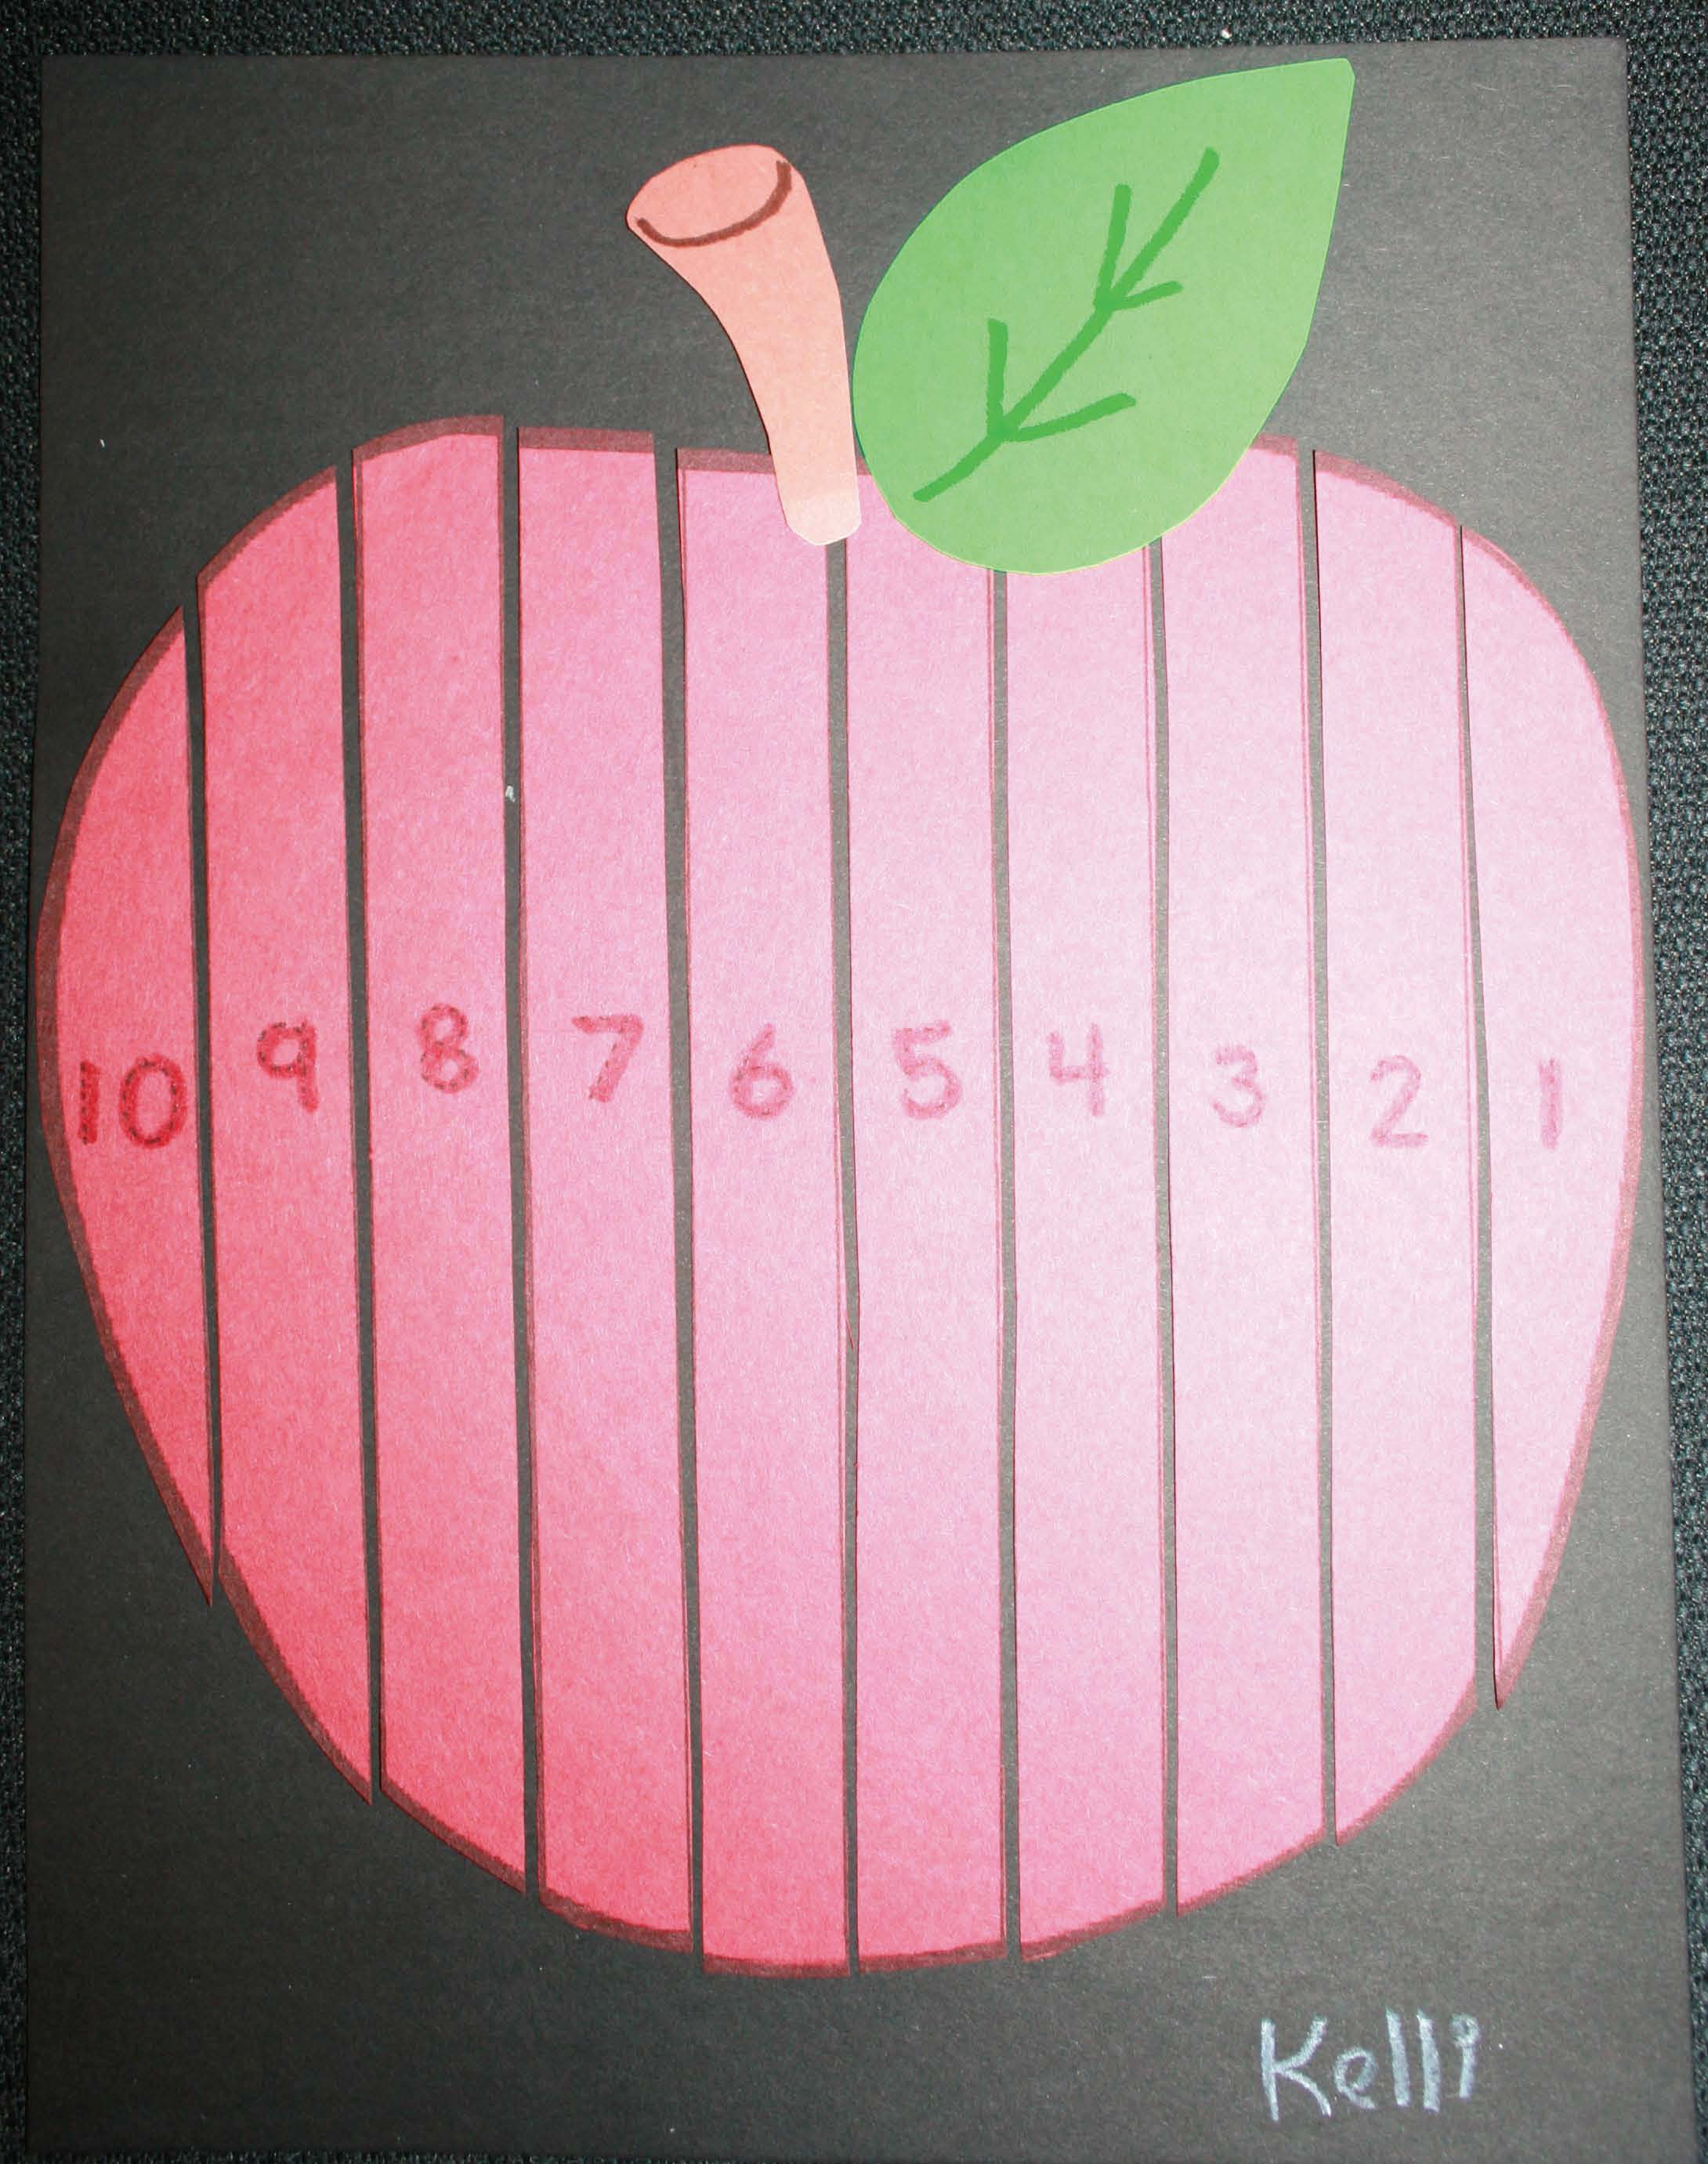 apple activities, pumpkin activities, apple crafts, apple puzzles, apple games, apple centers, apple math, pumpkin crafts, pumpkin puzzles, pumpkin centers, pumpkin math, harvest bulletin boards, pumpkin bulletin boards, apple bullein boards, skip counting by 10's activities, counting backwards activities, common core apples, common core pumpkins